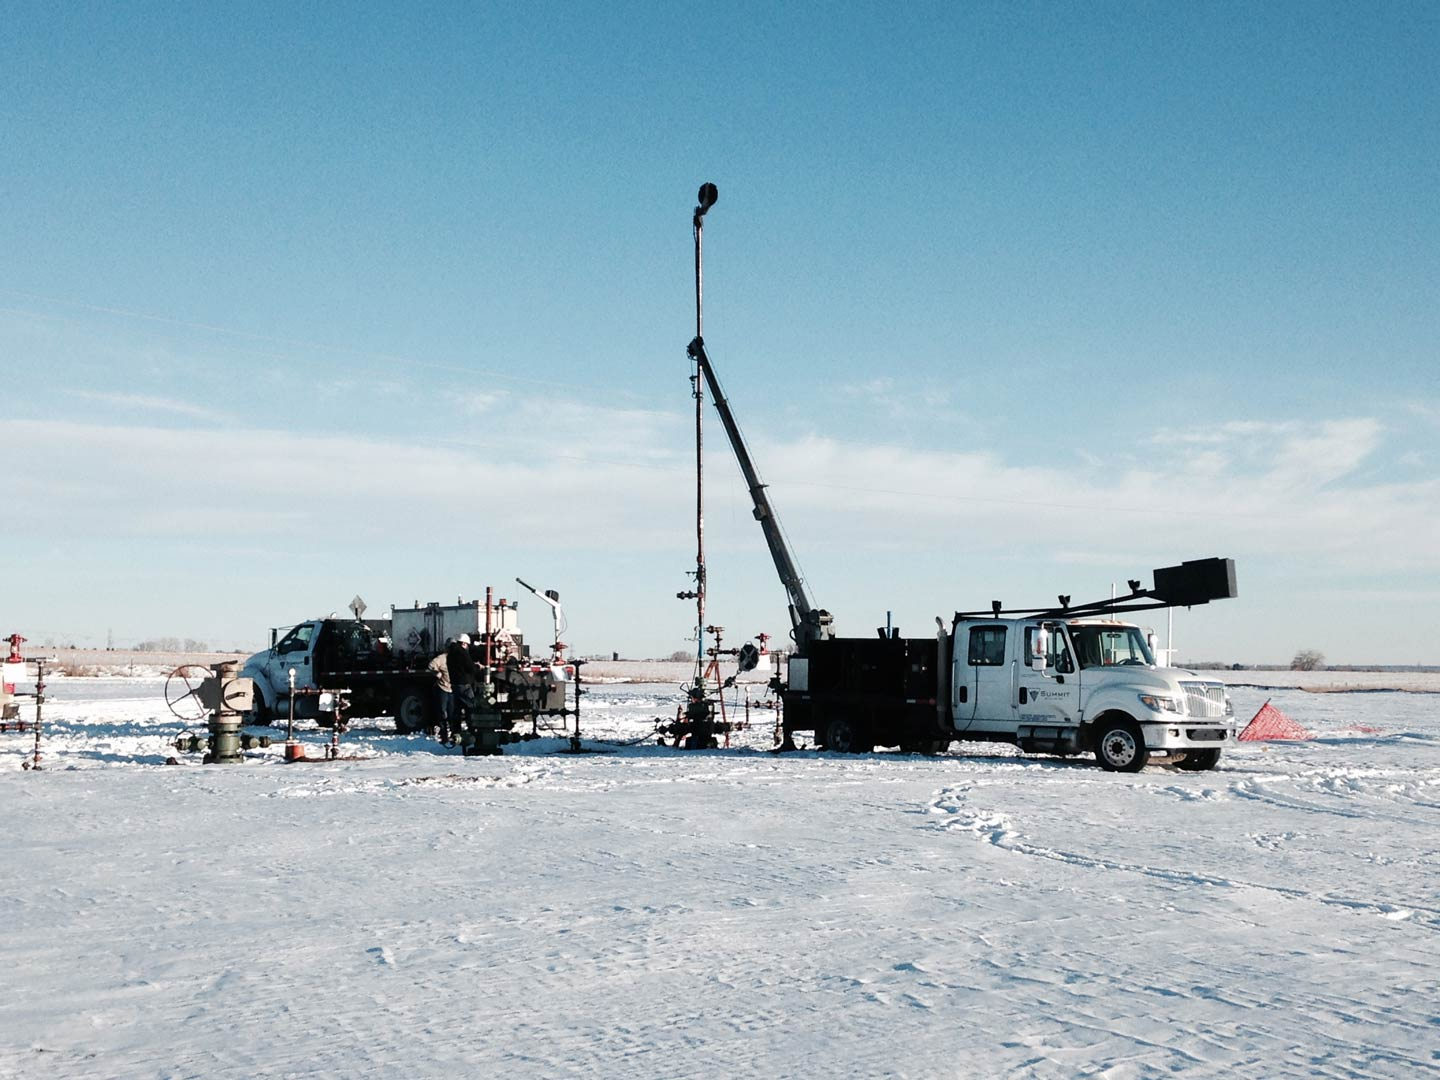 Truck in process of well drilling regardless of winter weather in Greeley, CO